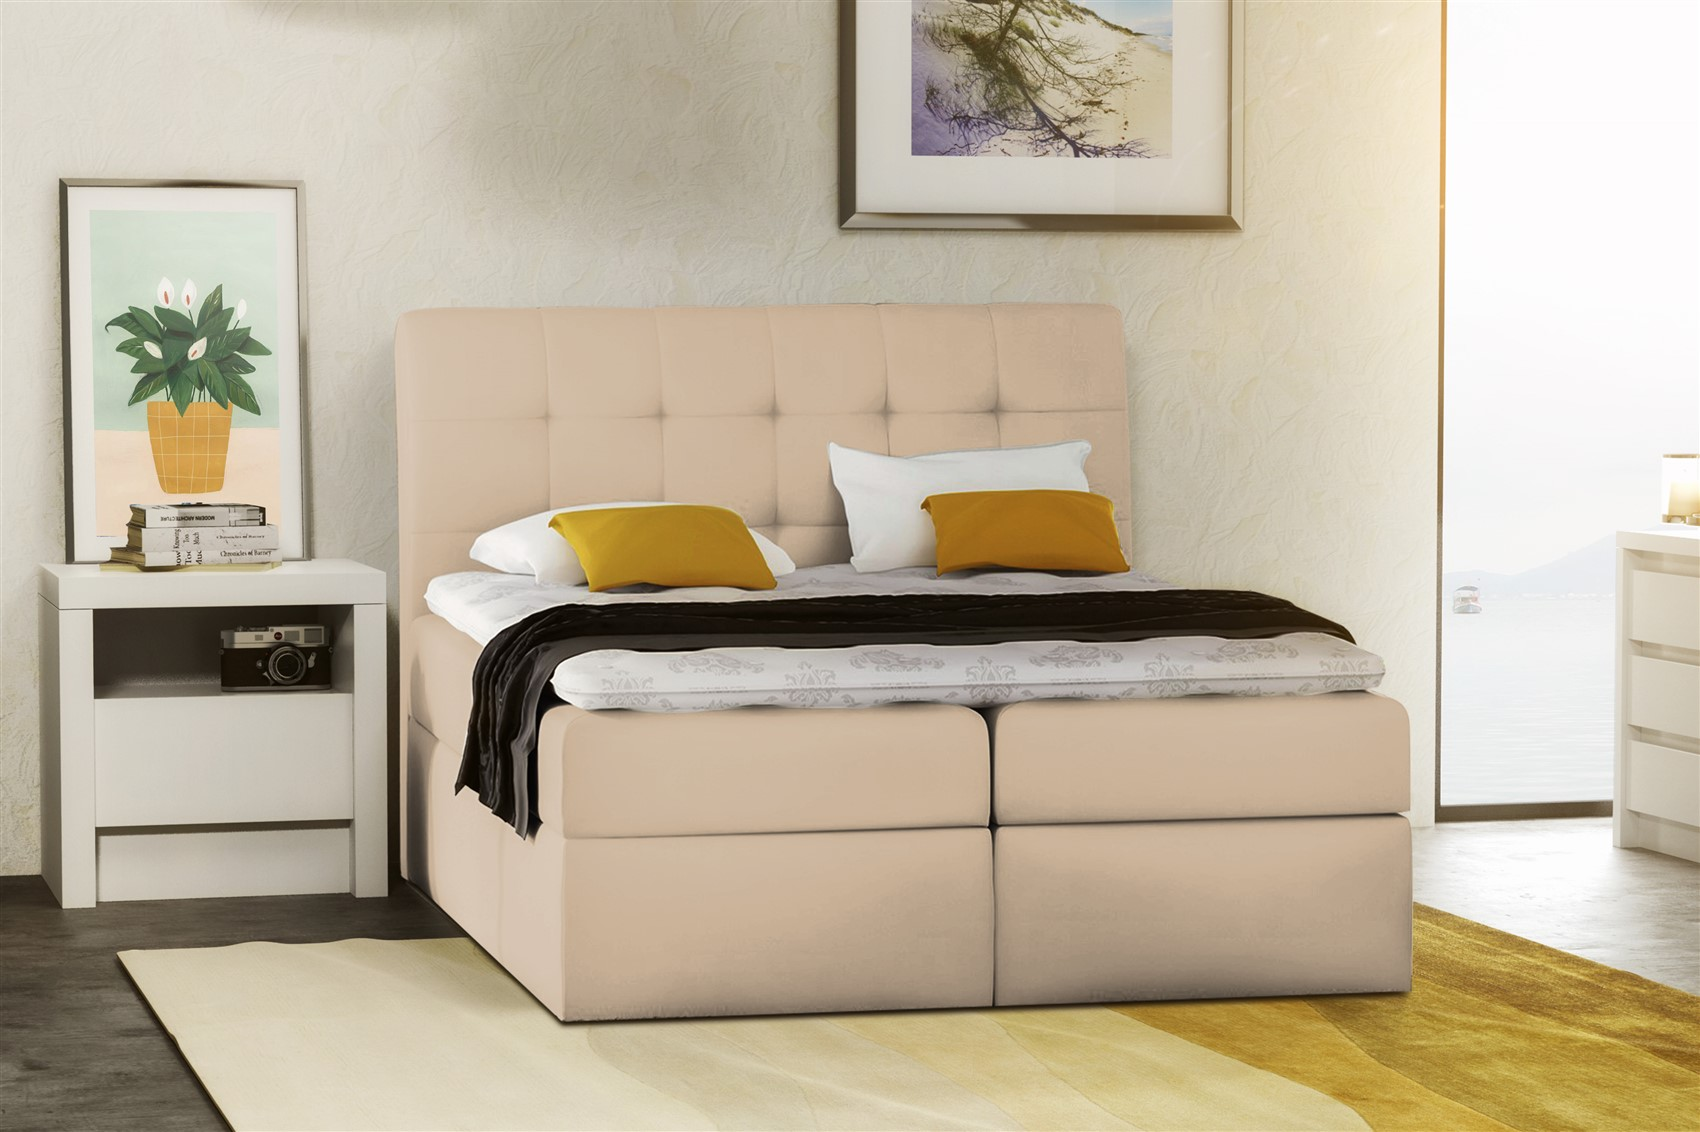 boxspringbett schlafzimmerbett turin kunstleder creme 120x200 cm fun m bel. Black Bedroom Furniture Sets. Home Design Ideas